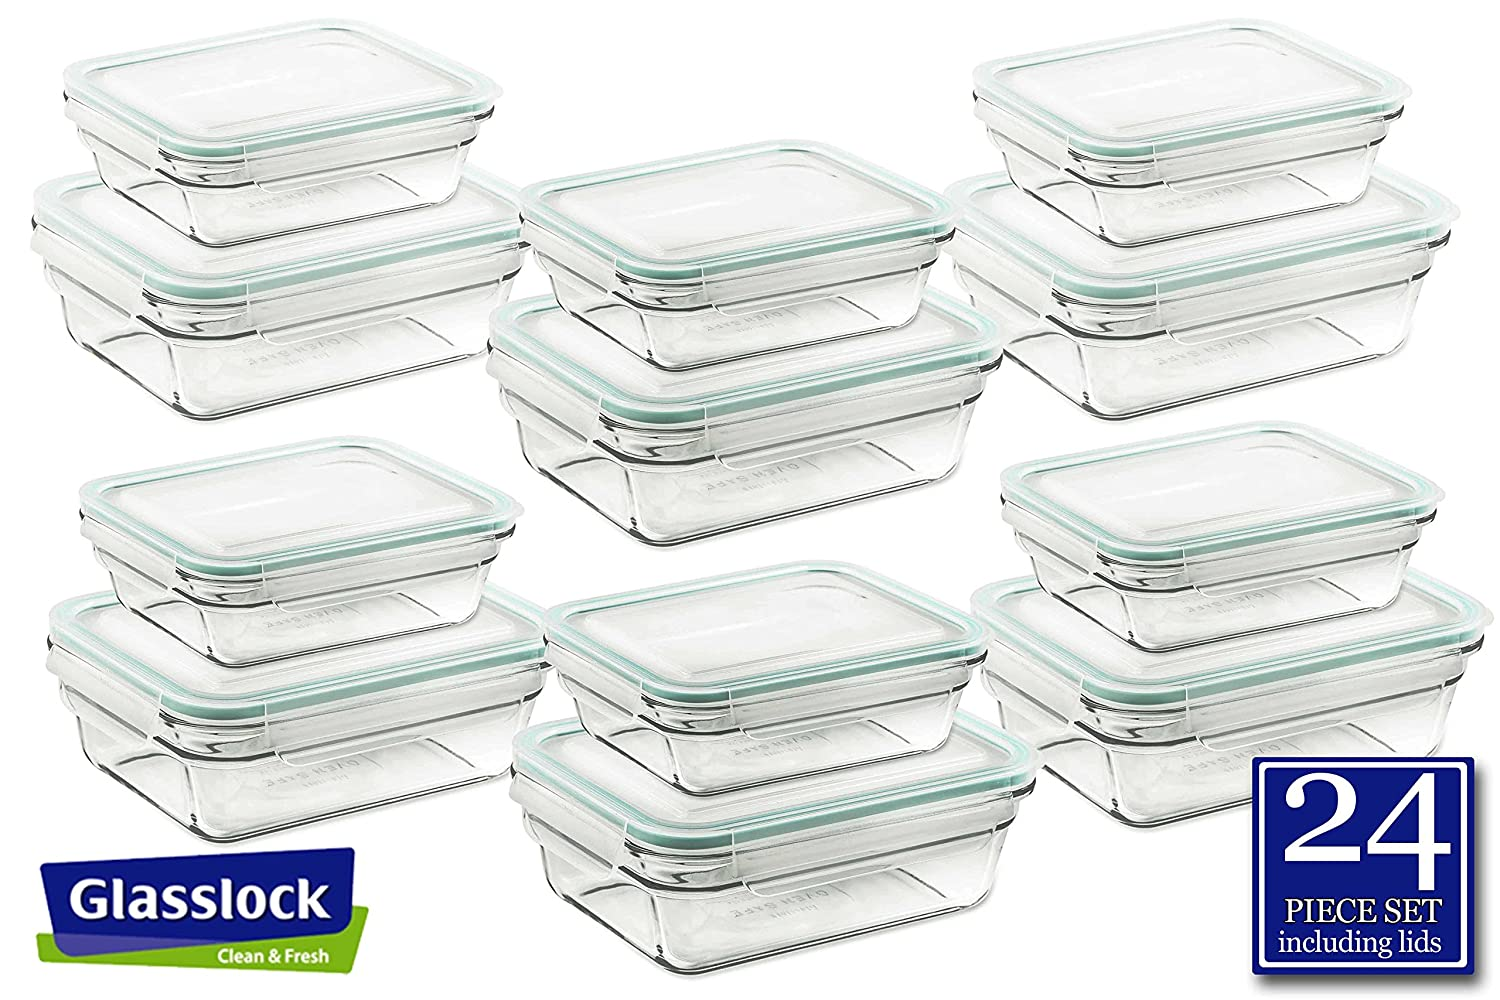 Airtight Anti-Spill Proof Tempered Glasslock Storage Rectangular Containers 24pc set~Microwave & Oven Safe